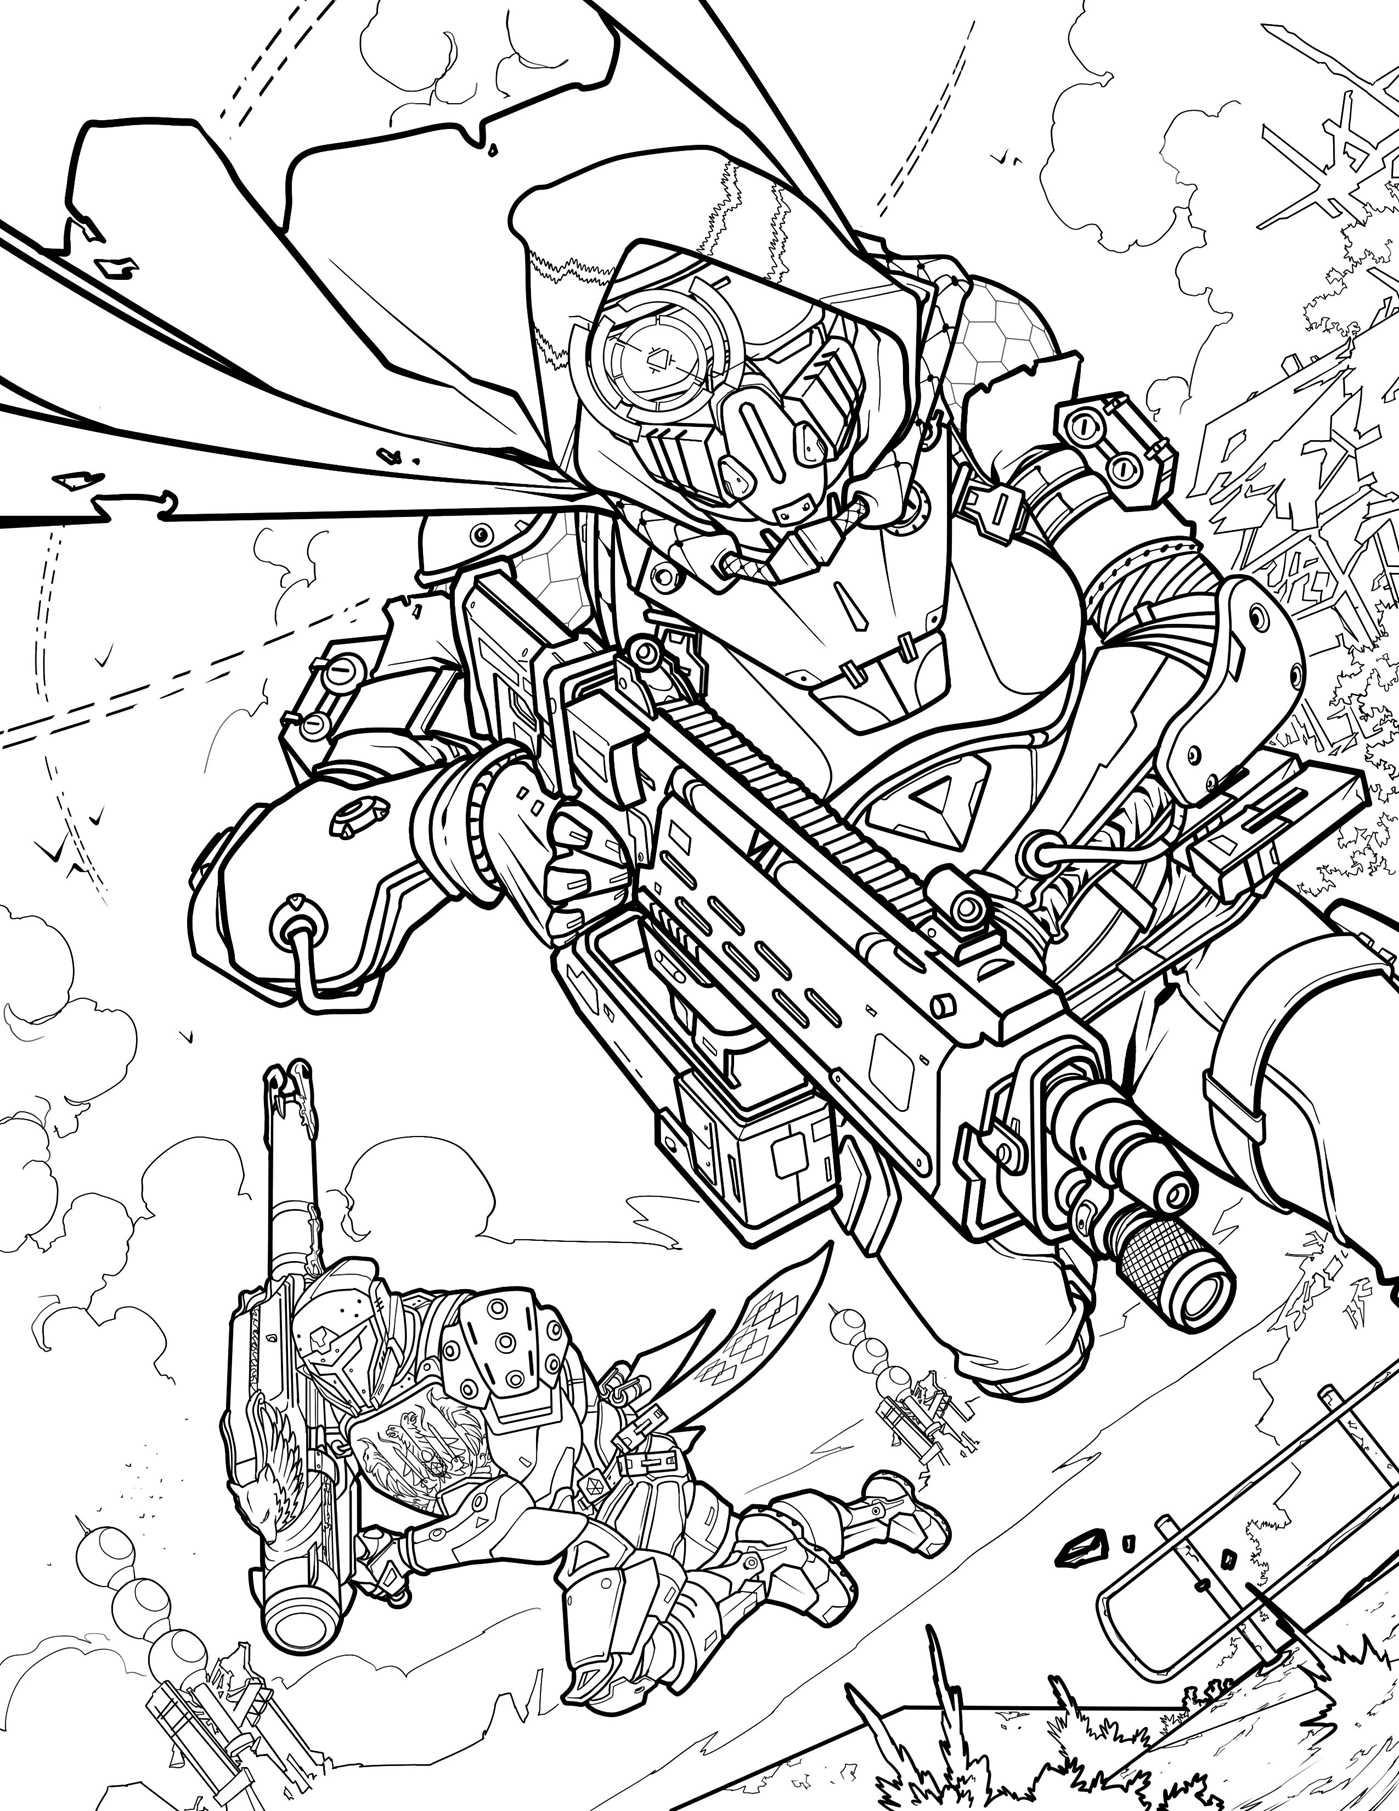 Battle Royale Libro Destiny: The Official Coloring Book | Book By Bungie, Ze